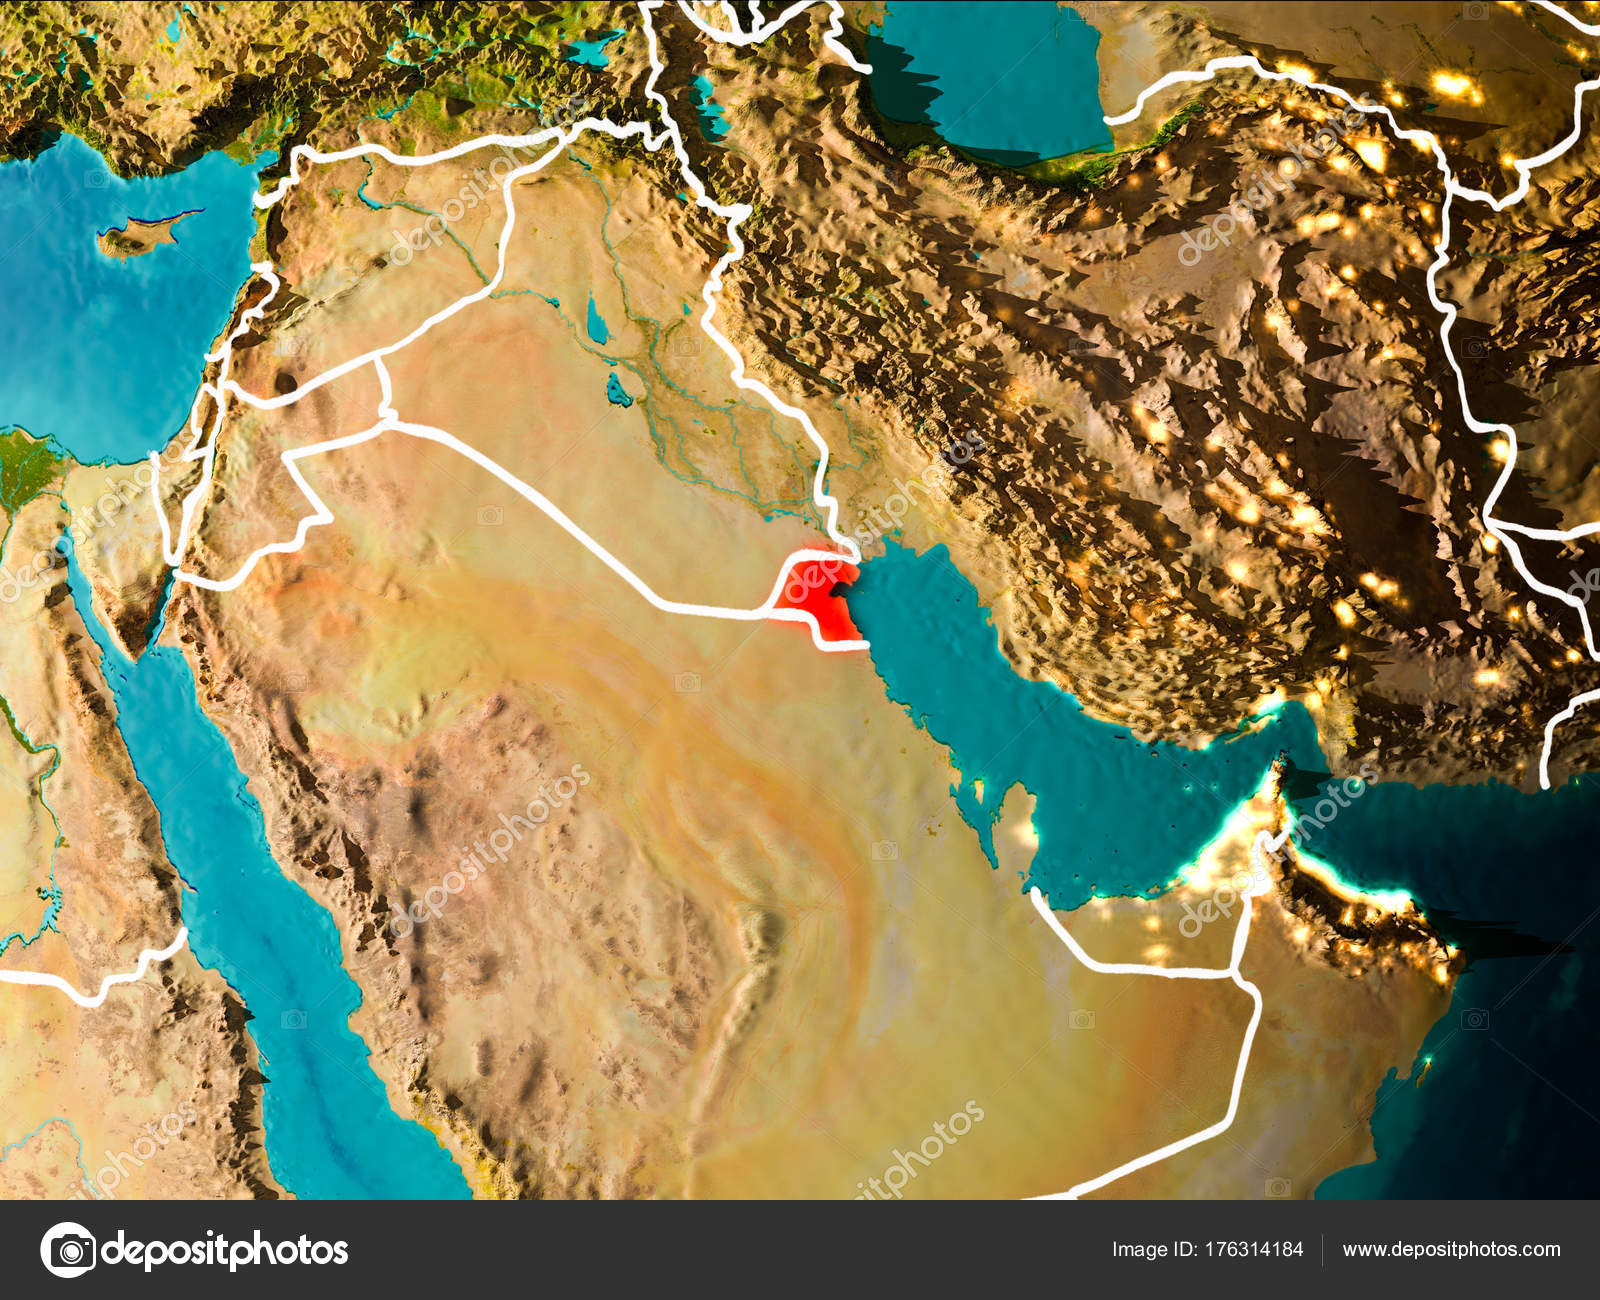 Map of Kuwait on Earth — Stock Photo © tom.griger #176314184 Kuwait On Map on algiers on map, cyprus on map, azerbaijan on map, iran on map, malaysia on map, mediterranean sea on map, qatar on map, iraq on map, morocco on map, doha on map, arabian peninsula on map, kyrgyzstan on map, syria map, lebanon on map, bahrain on map, afghanistan on map, israel on map, australia on map, yemen on map, kuwait map google,